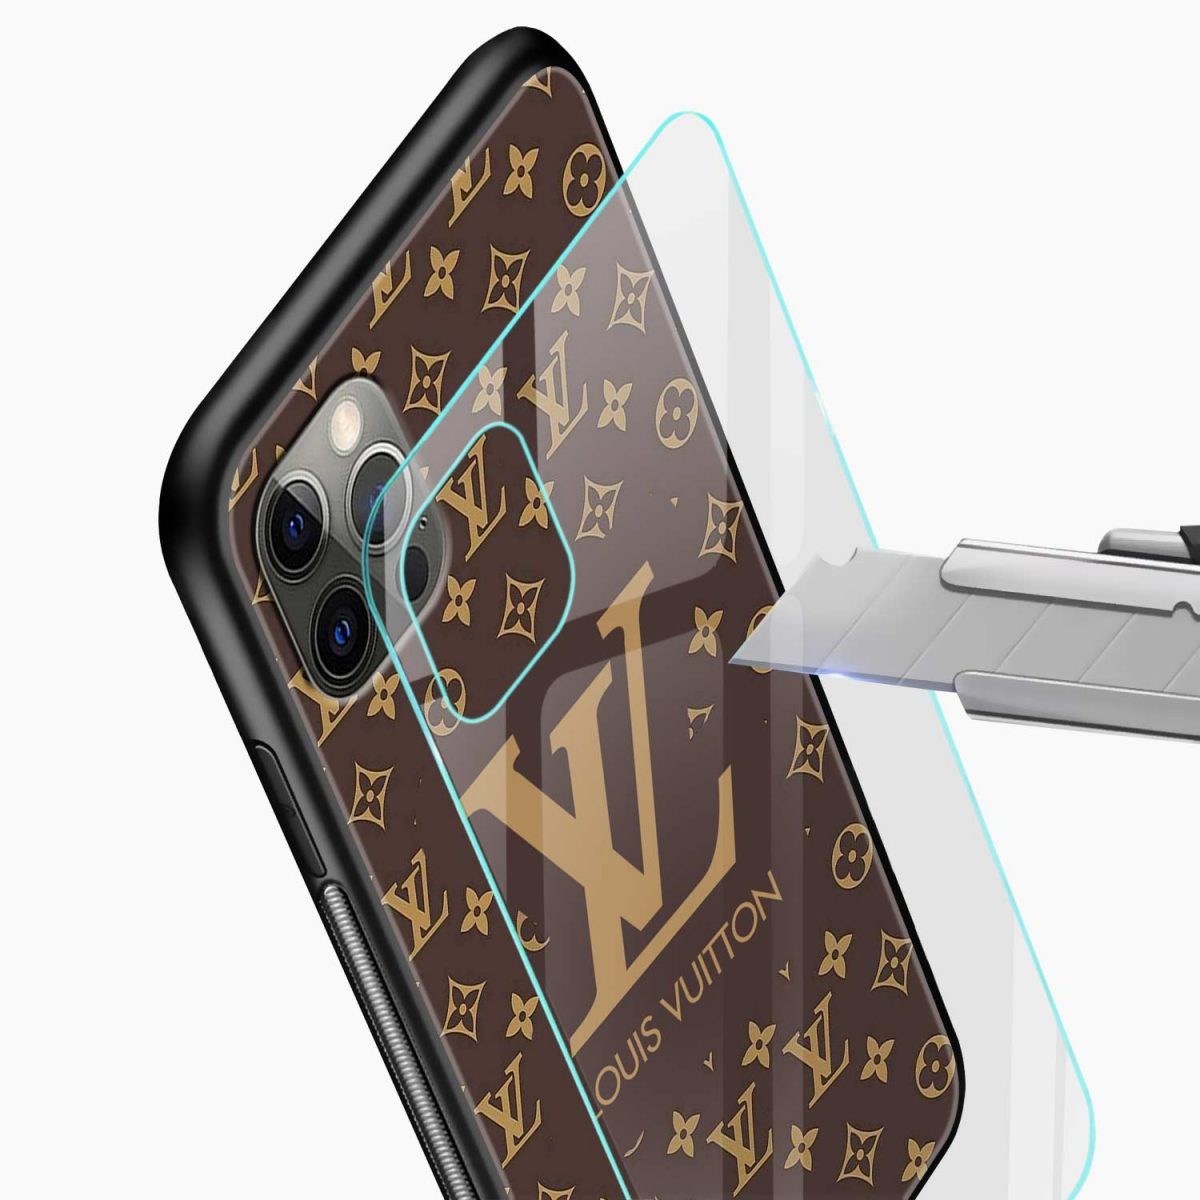 louis vuitton iphone pro back cover glass view